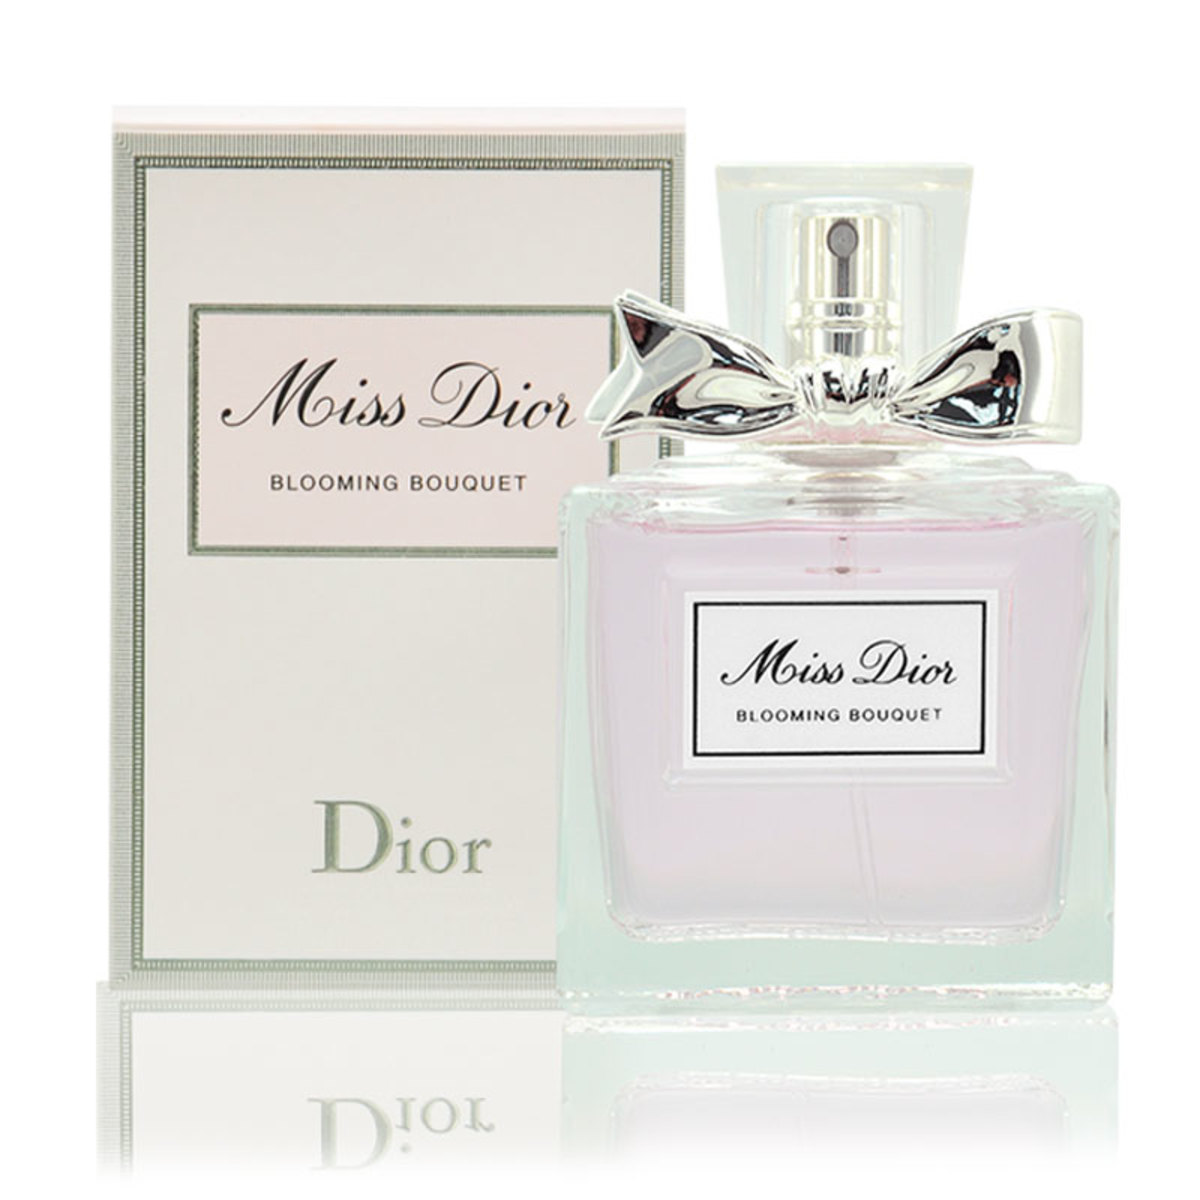 Miss Dior Blooming Bouquet EDT Natural Spray 50ml - [Parallel Import Product]